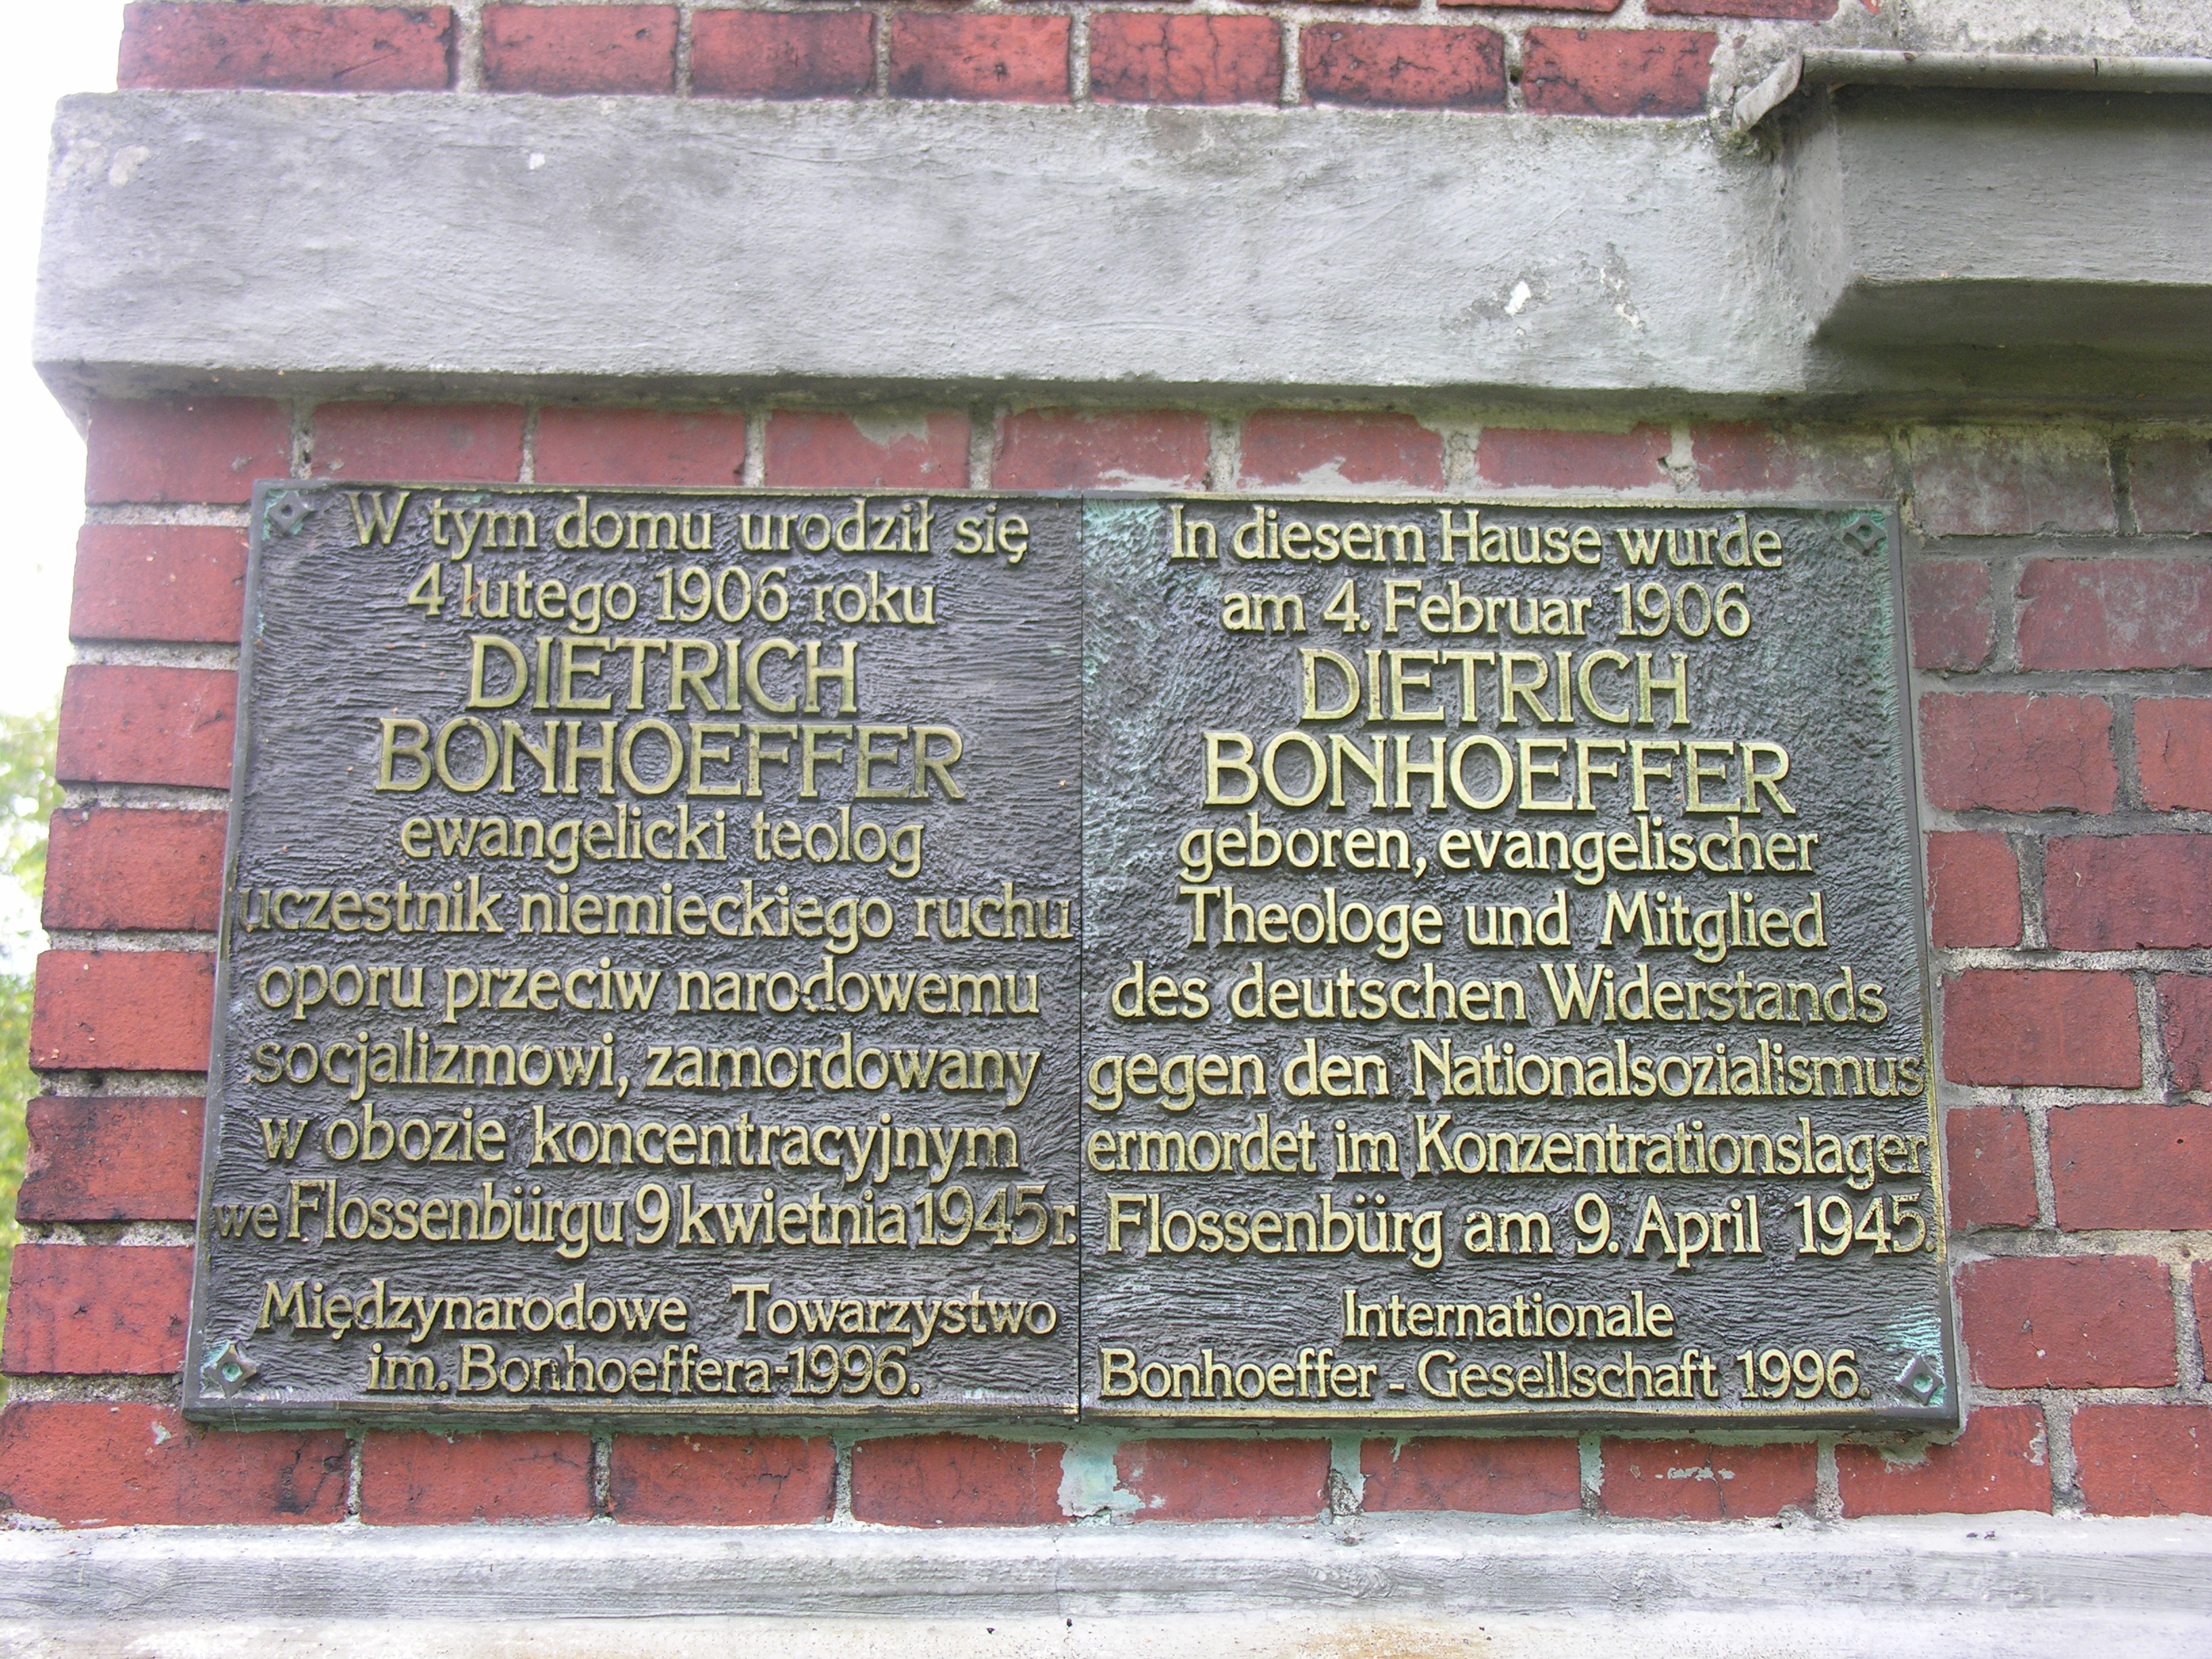 Bonhoeffer-tablica.JPG